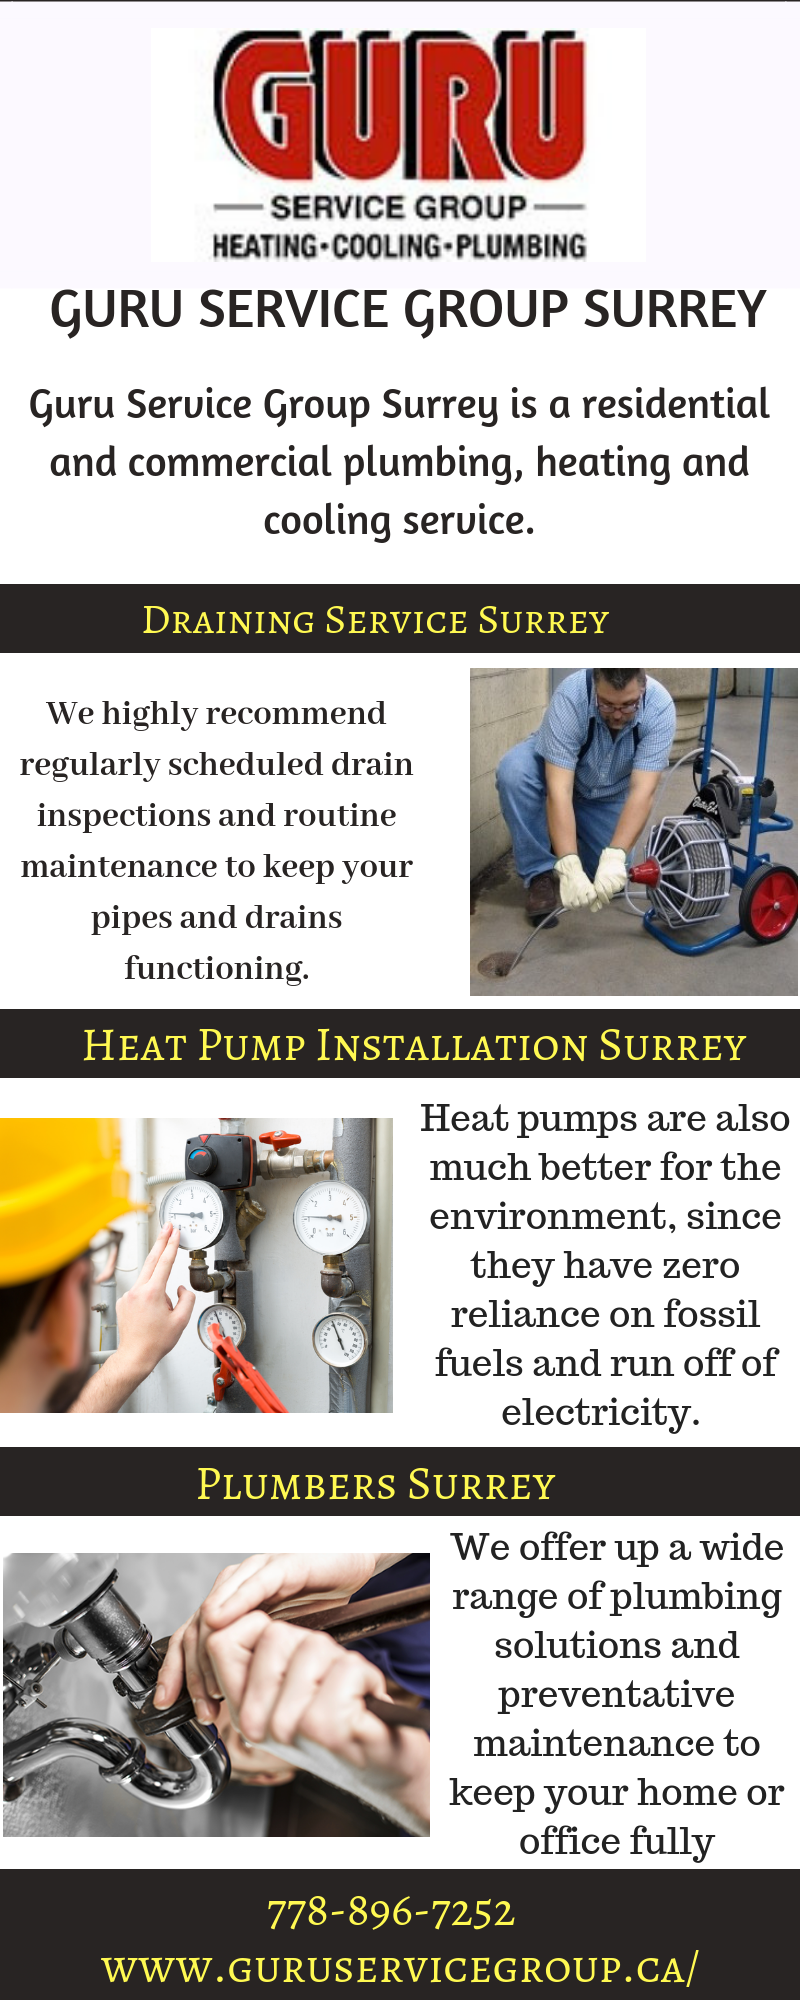 Are You Needed A Commercial Emergency Plumber Right Away In Surrey